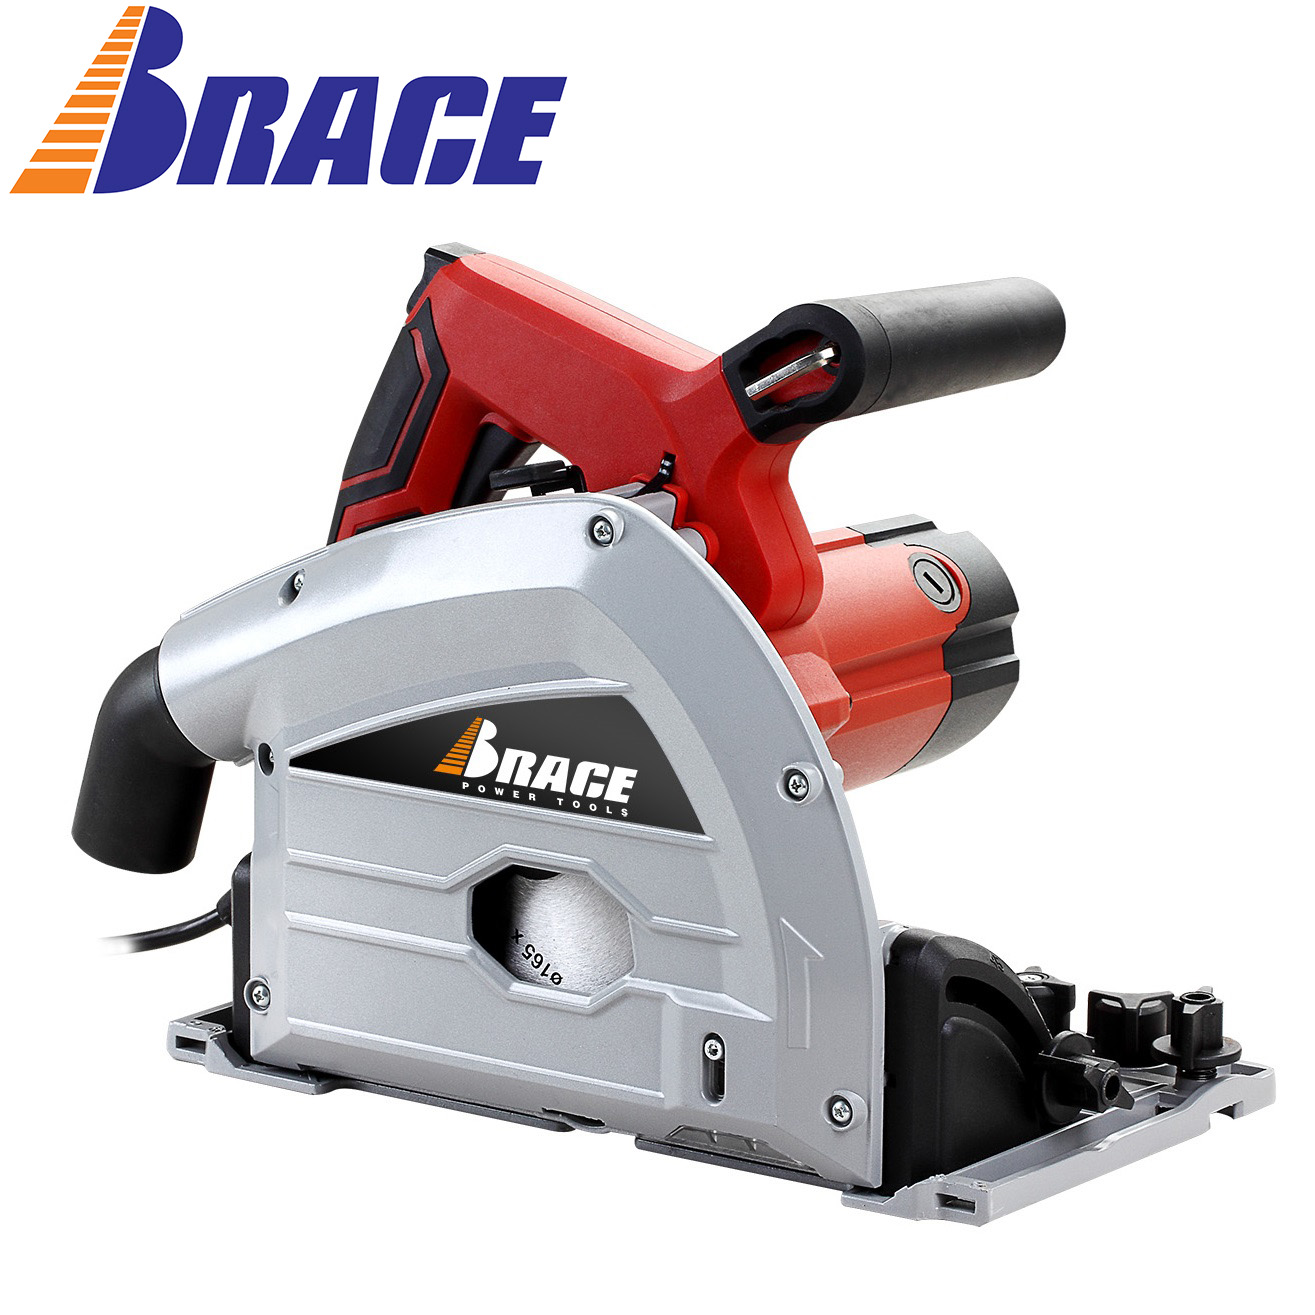 Brace/OEM 165mm Plunge cut circular track saw with guide rail